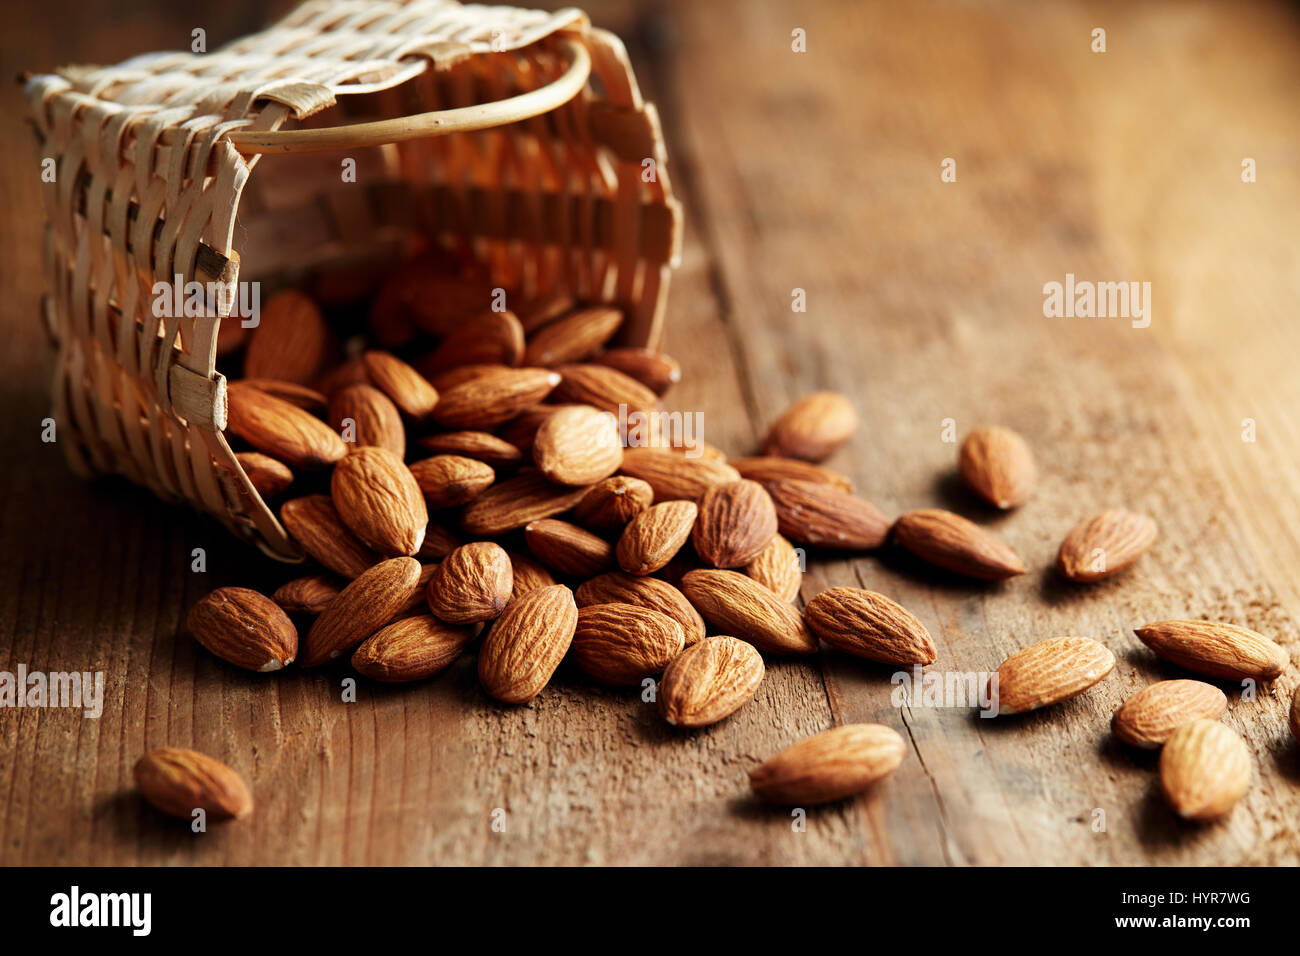 Whole almonds falling out of a small basket. A pile of almonds on a wooden surface. - Stock Image